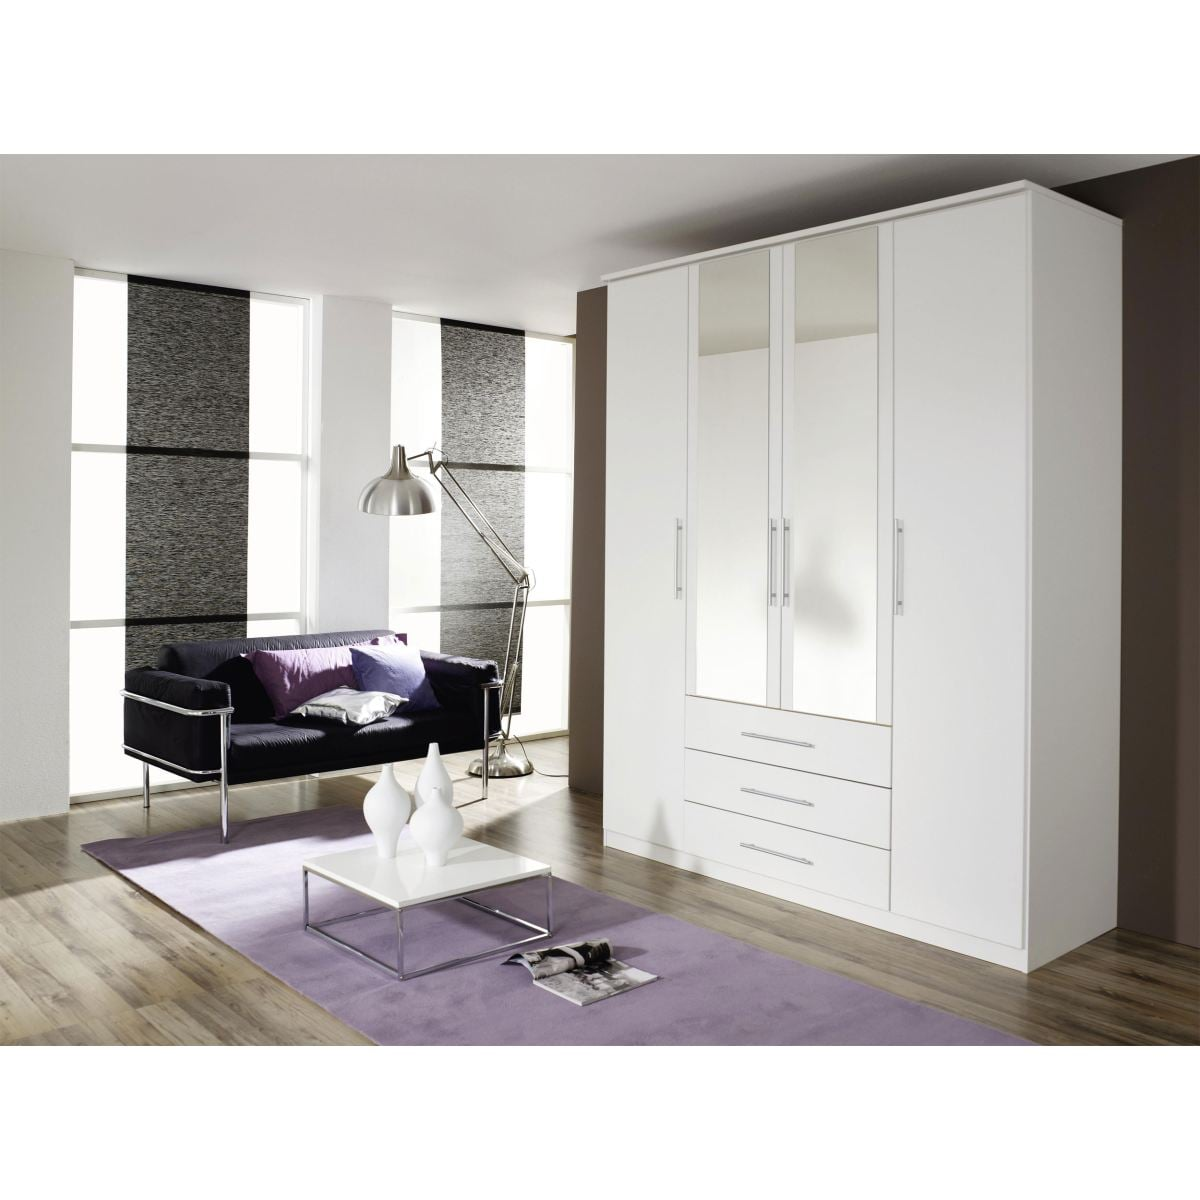 kleiderschrank integra porta porta onlineshop. Black Bedroom Furniture Sets. Home Design Ideas